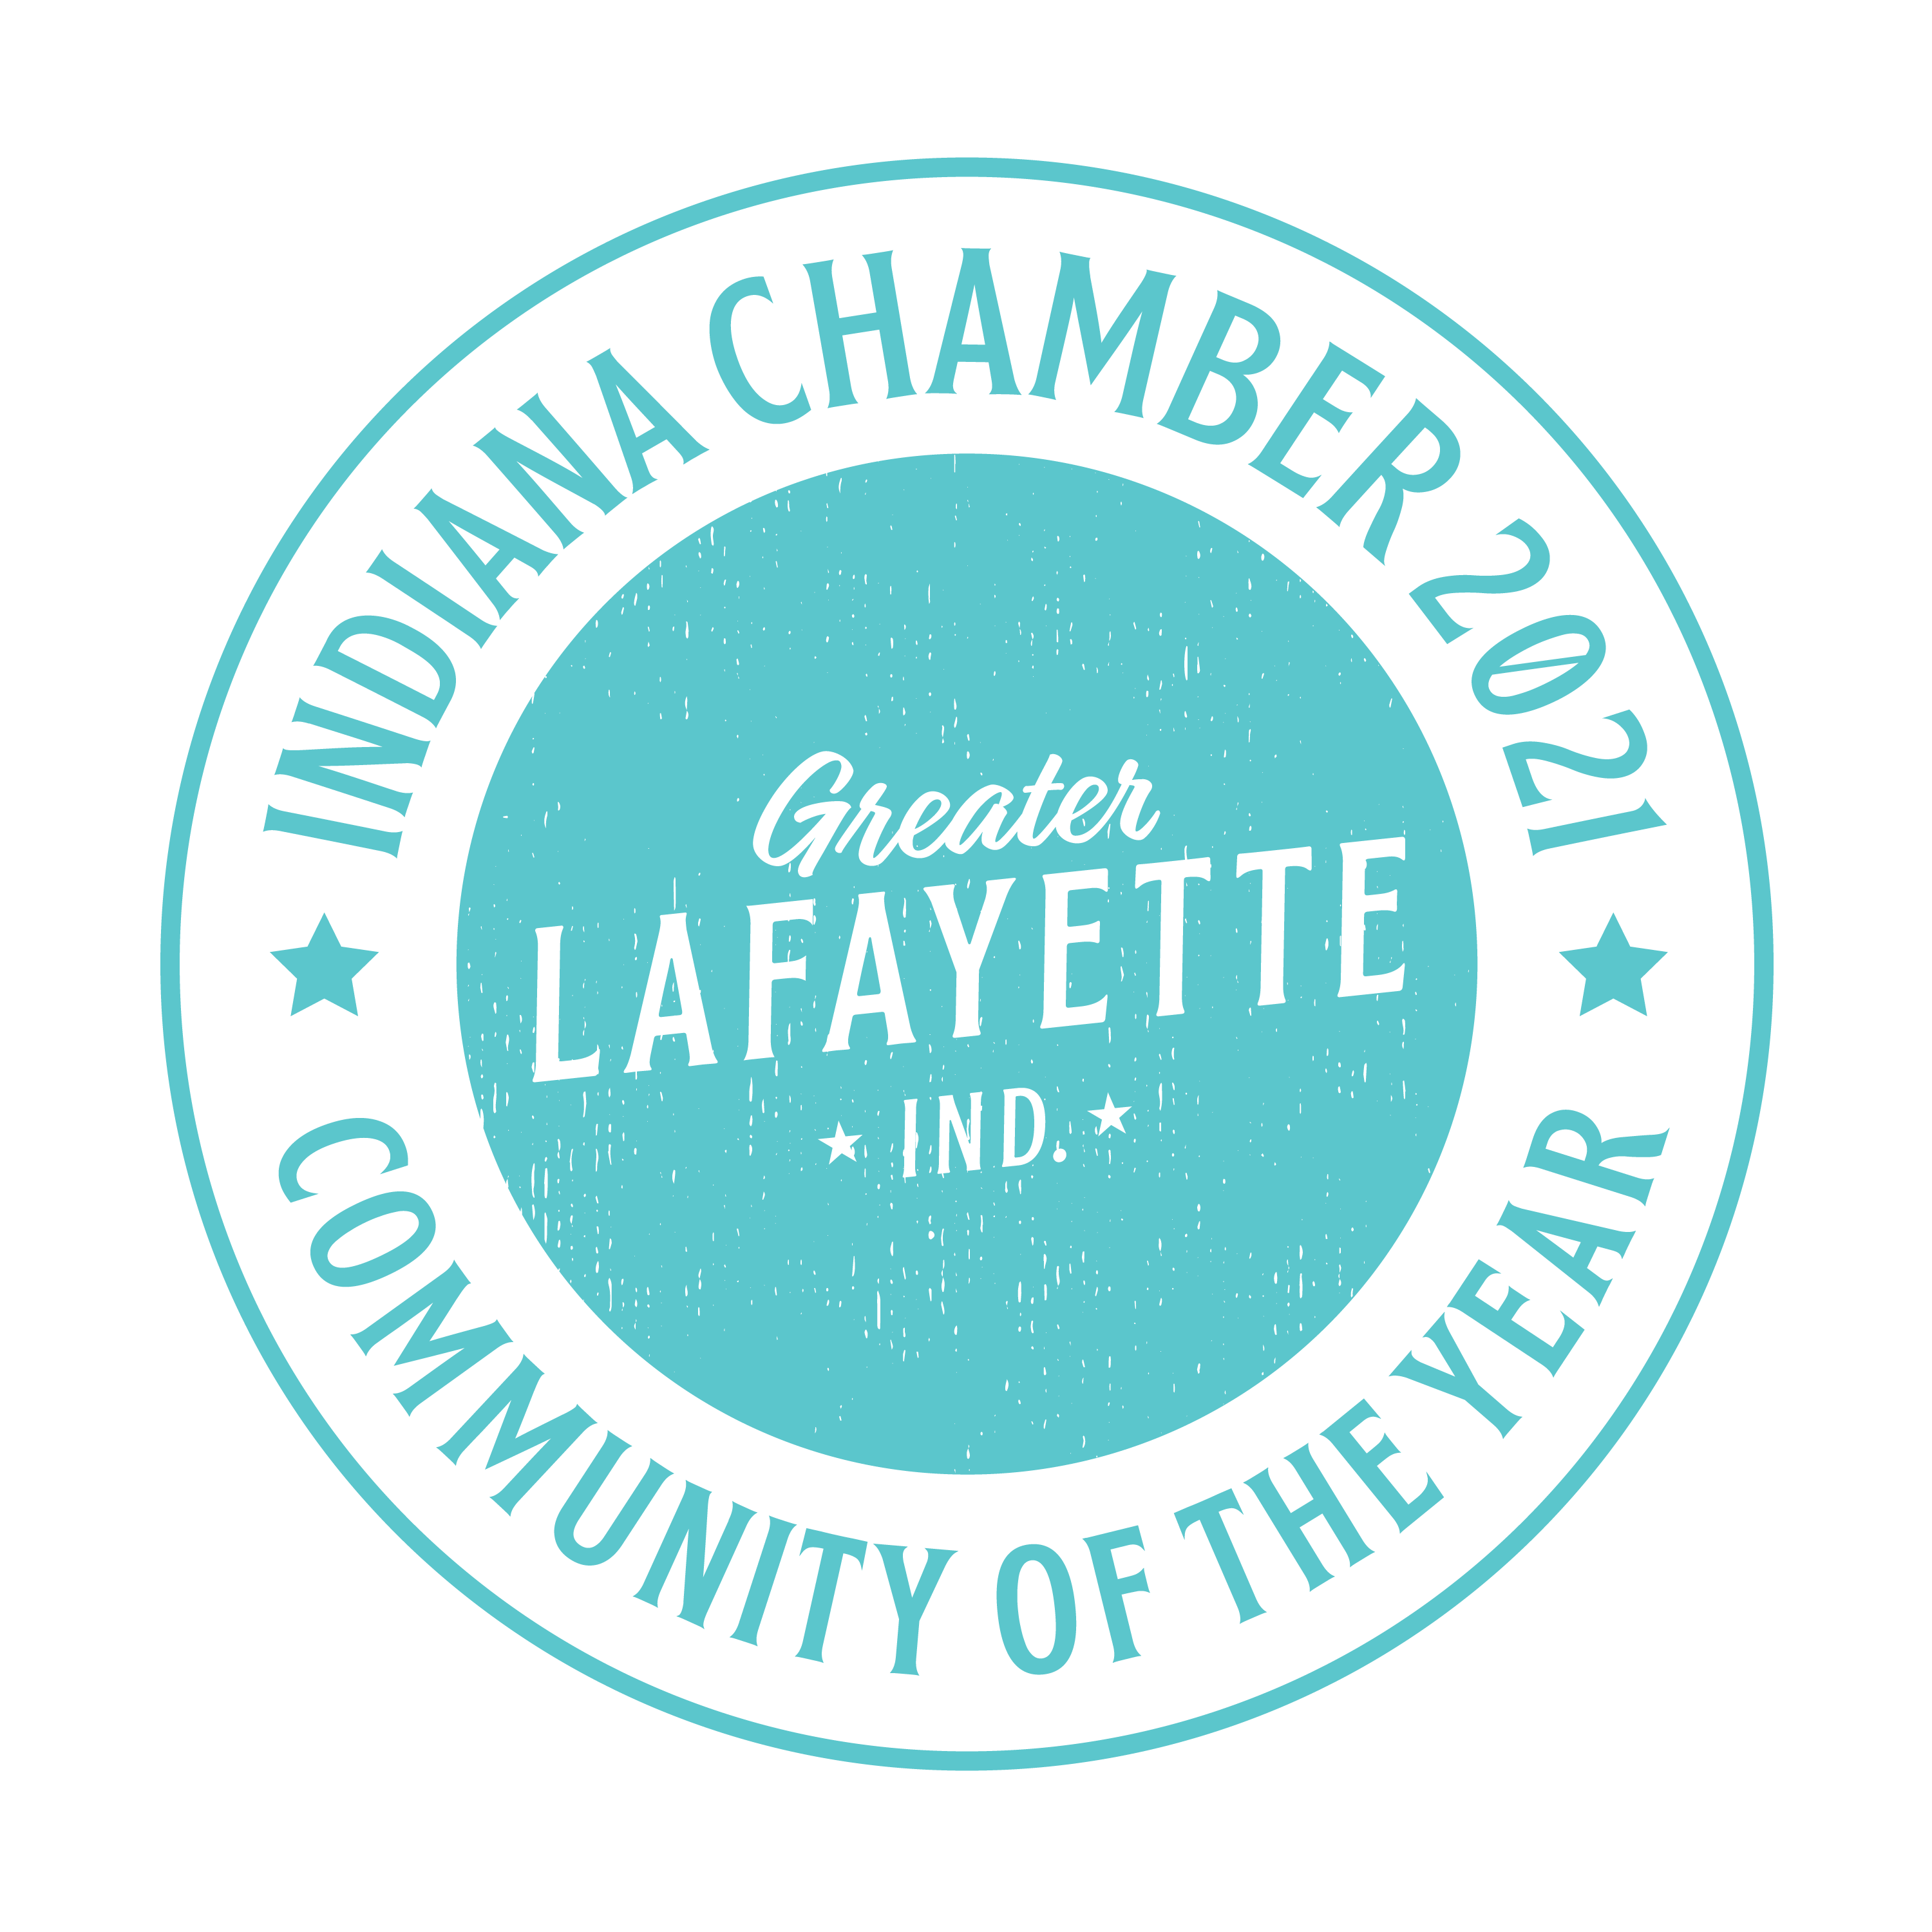 GCL-Community-of-the-Year-Logo-Final---Teal